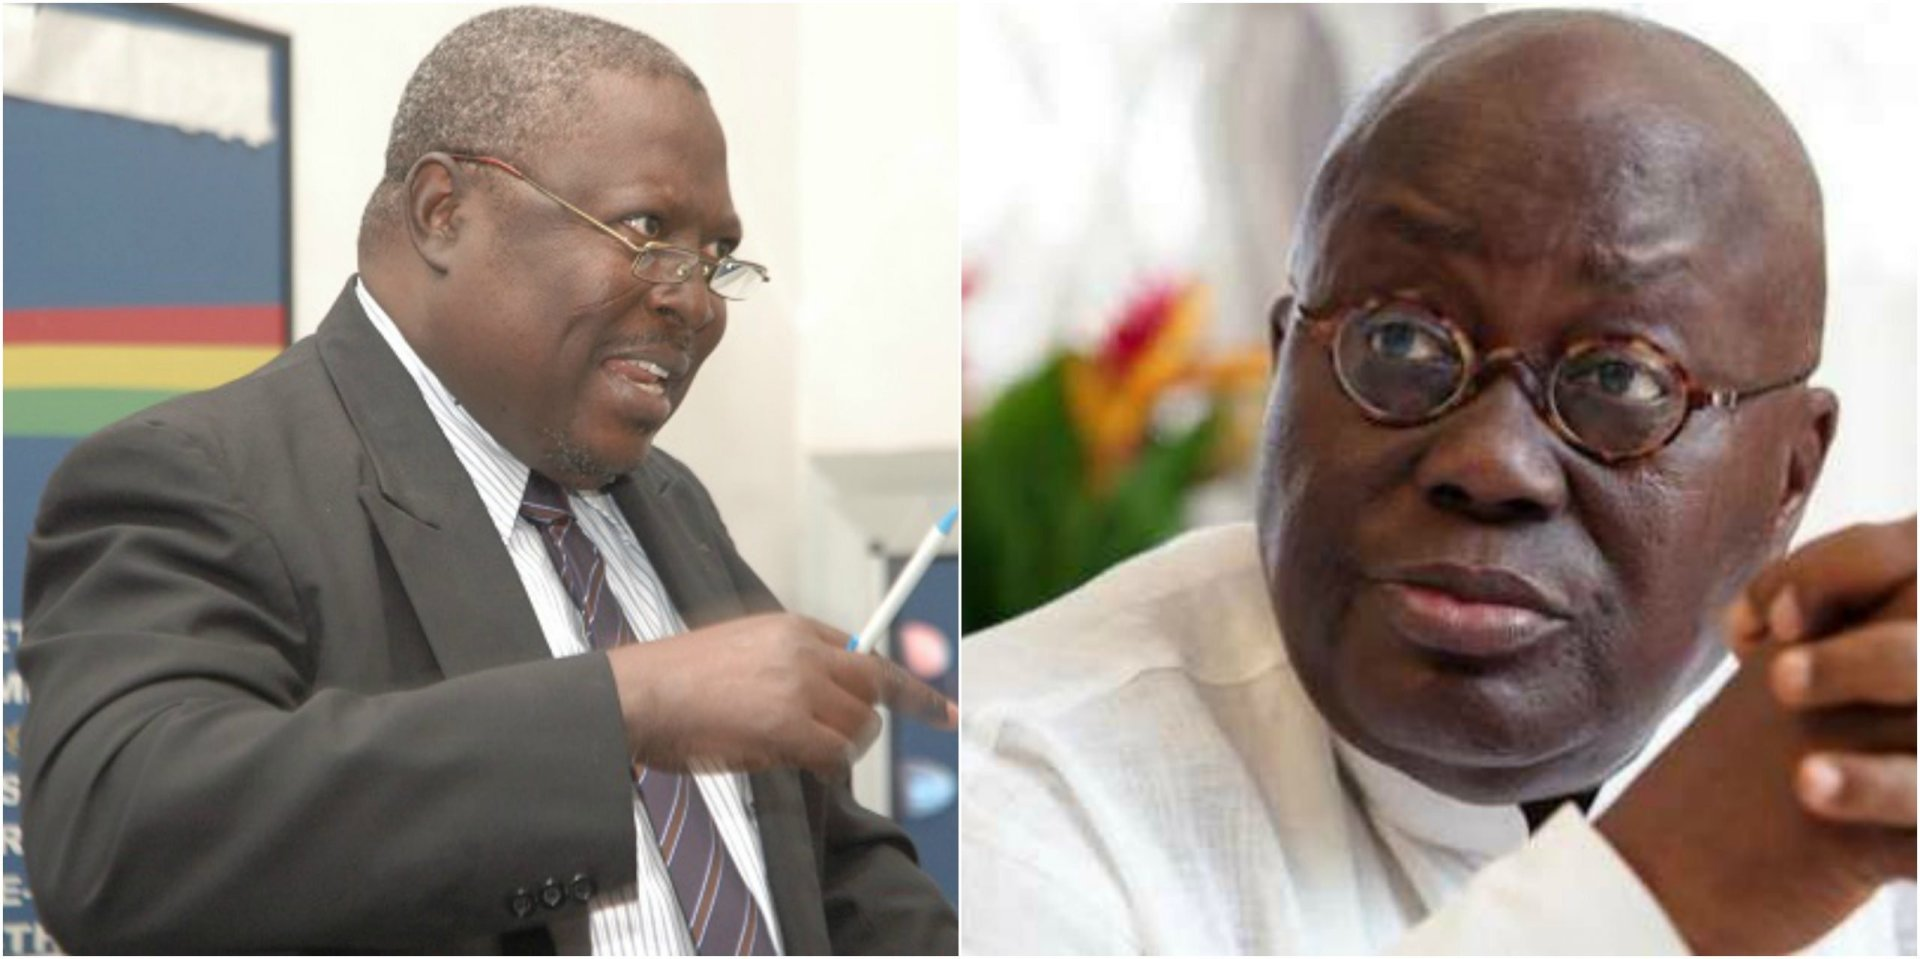 Martin Amidu exp0ses Akufo-Addo again; reveals how the President compelled some NDC MPs to approve his ministers